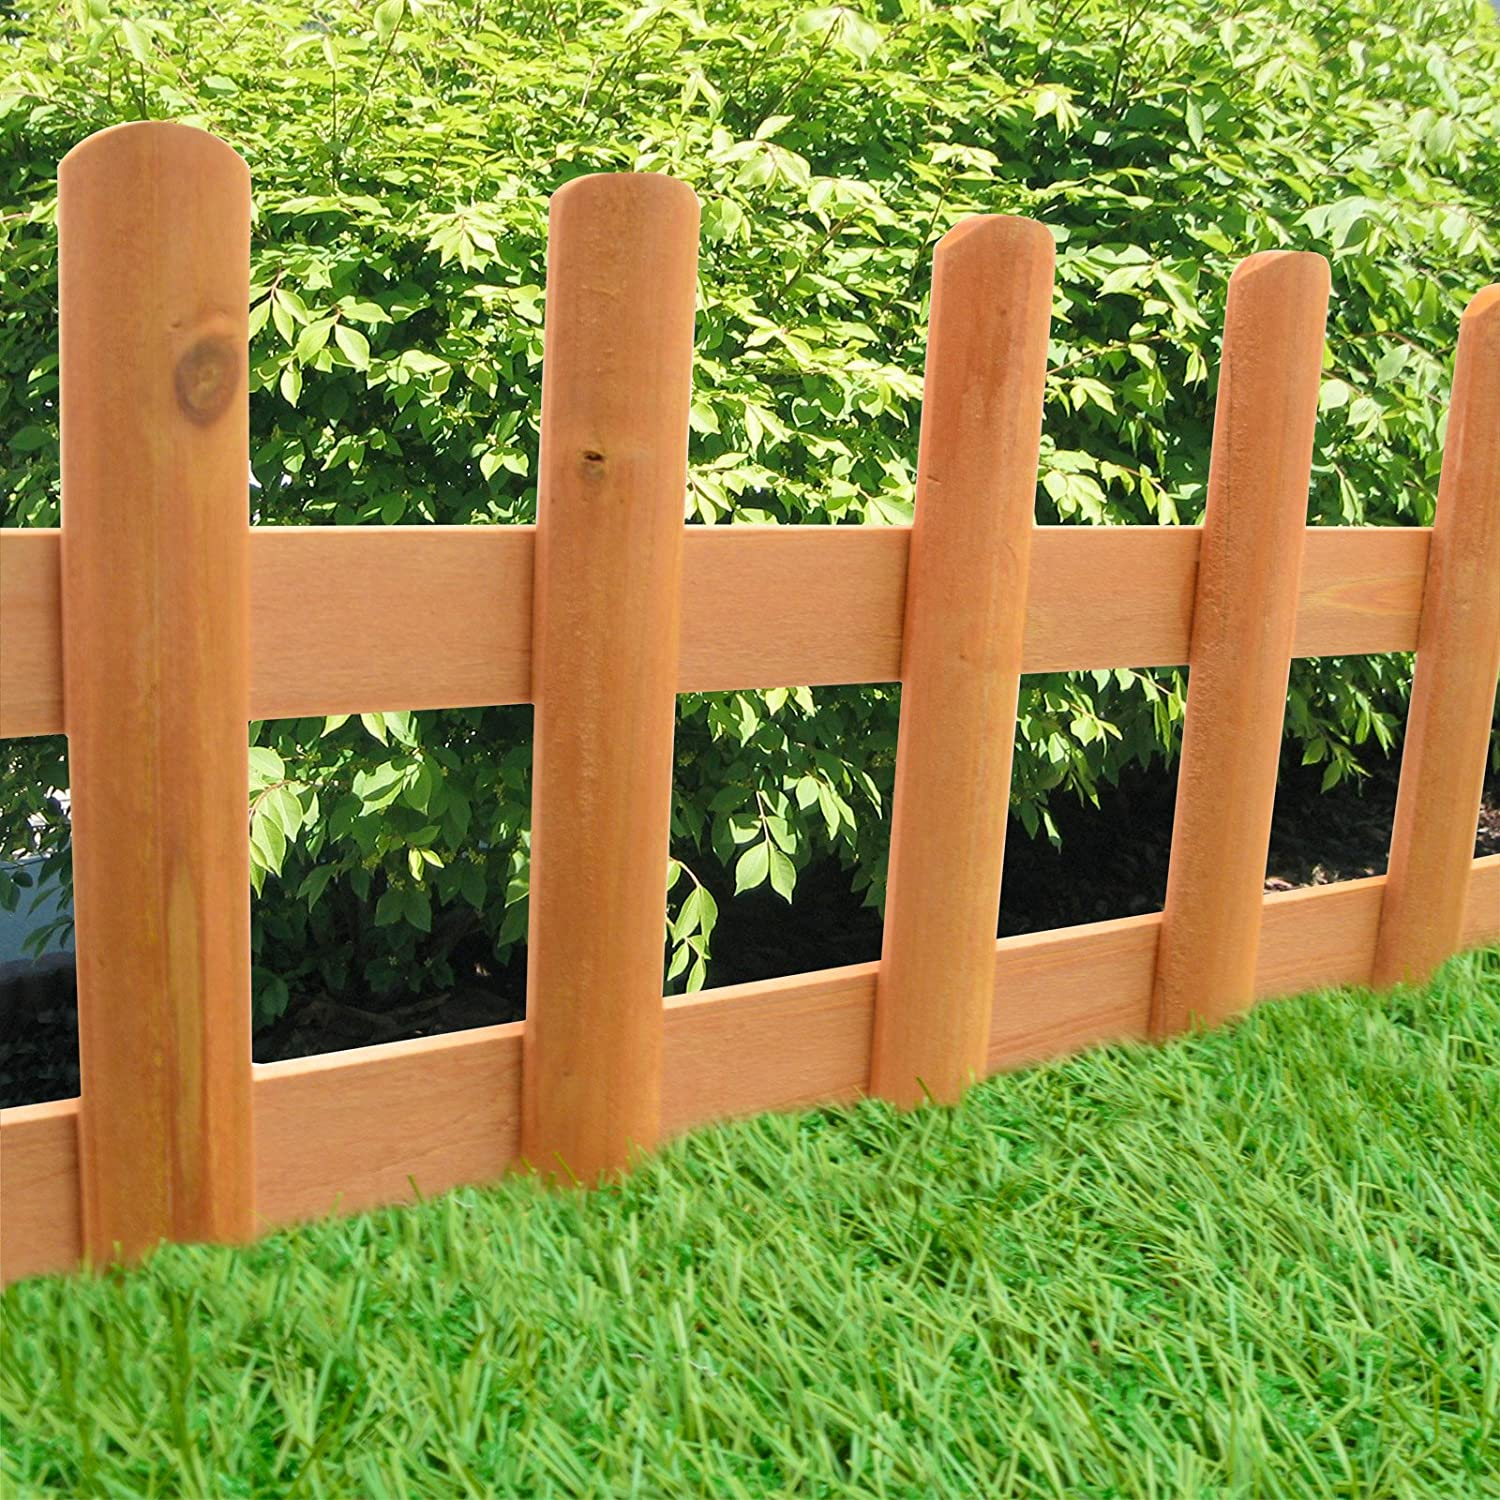 wood picket fence panels. Pack Of 2 Wooden Picket Fence Panels - Outdoor Garden Flowerbed Edging Borders Ready Made Natural Wood For Flower Beds And Paths: Amazon.co.uk: \u0026 ~